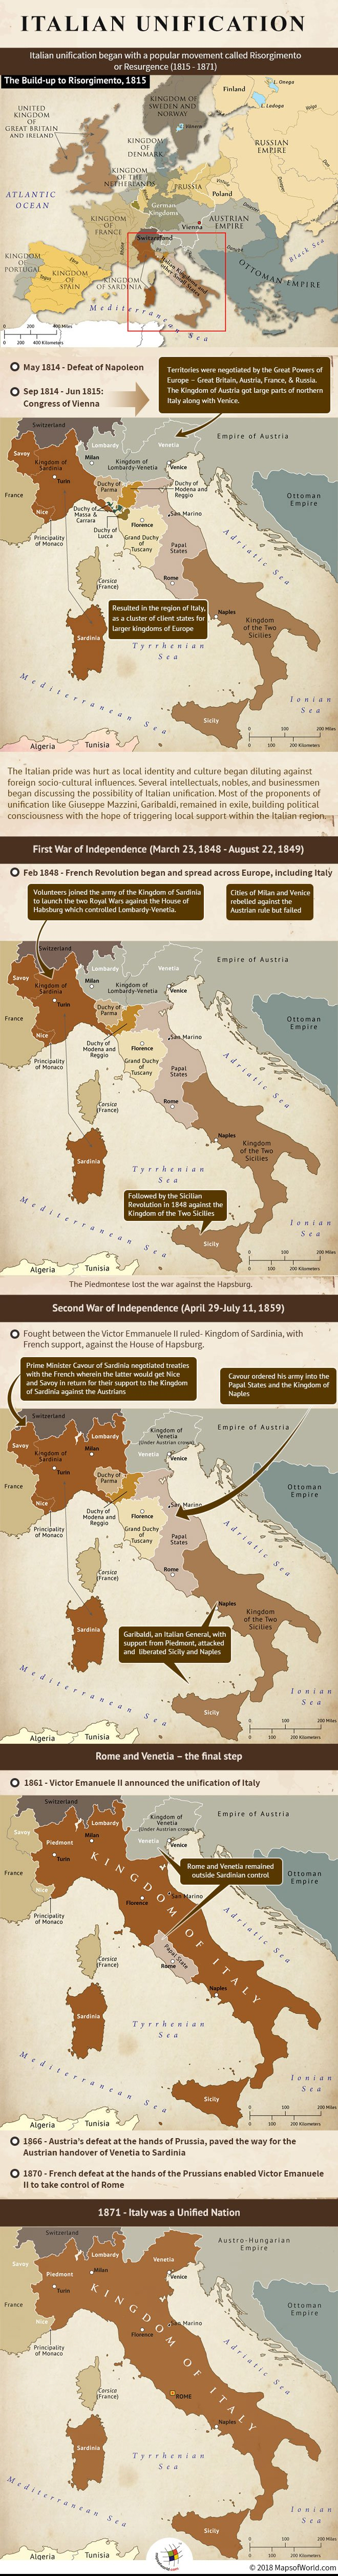 Infographic and Maps - How Italy was Unified